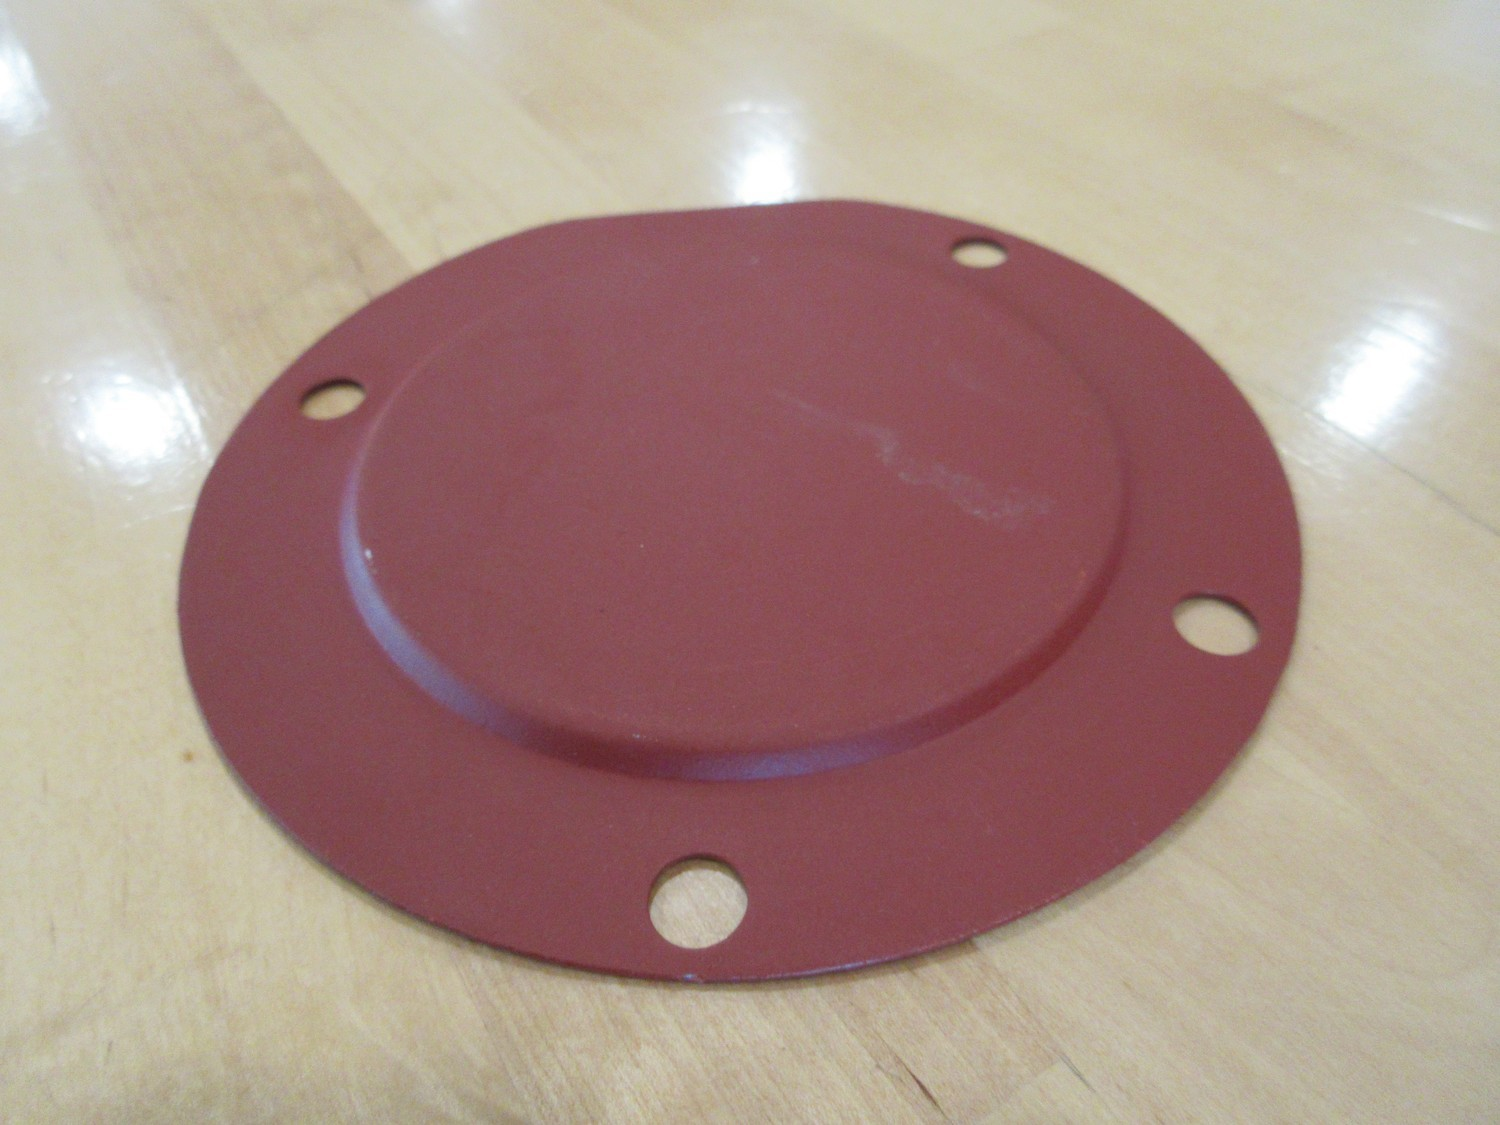 Master Cylinder Inspection Cover Plate